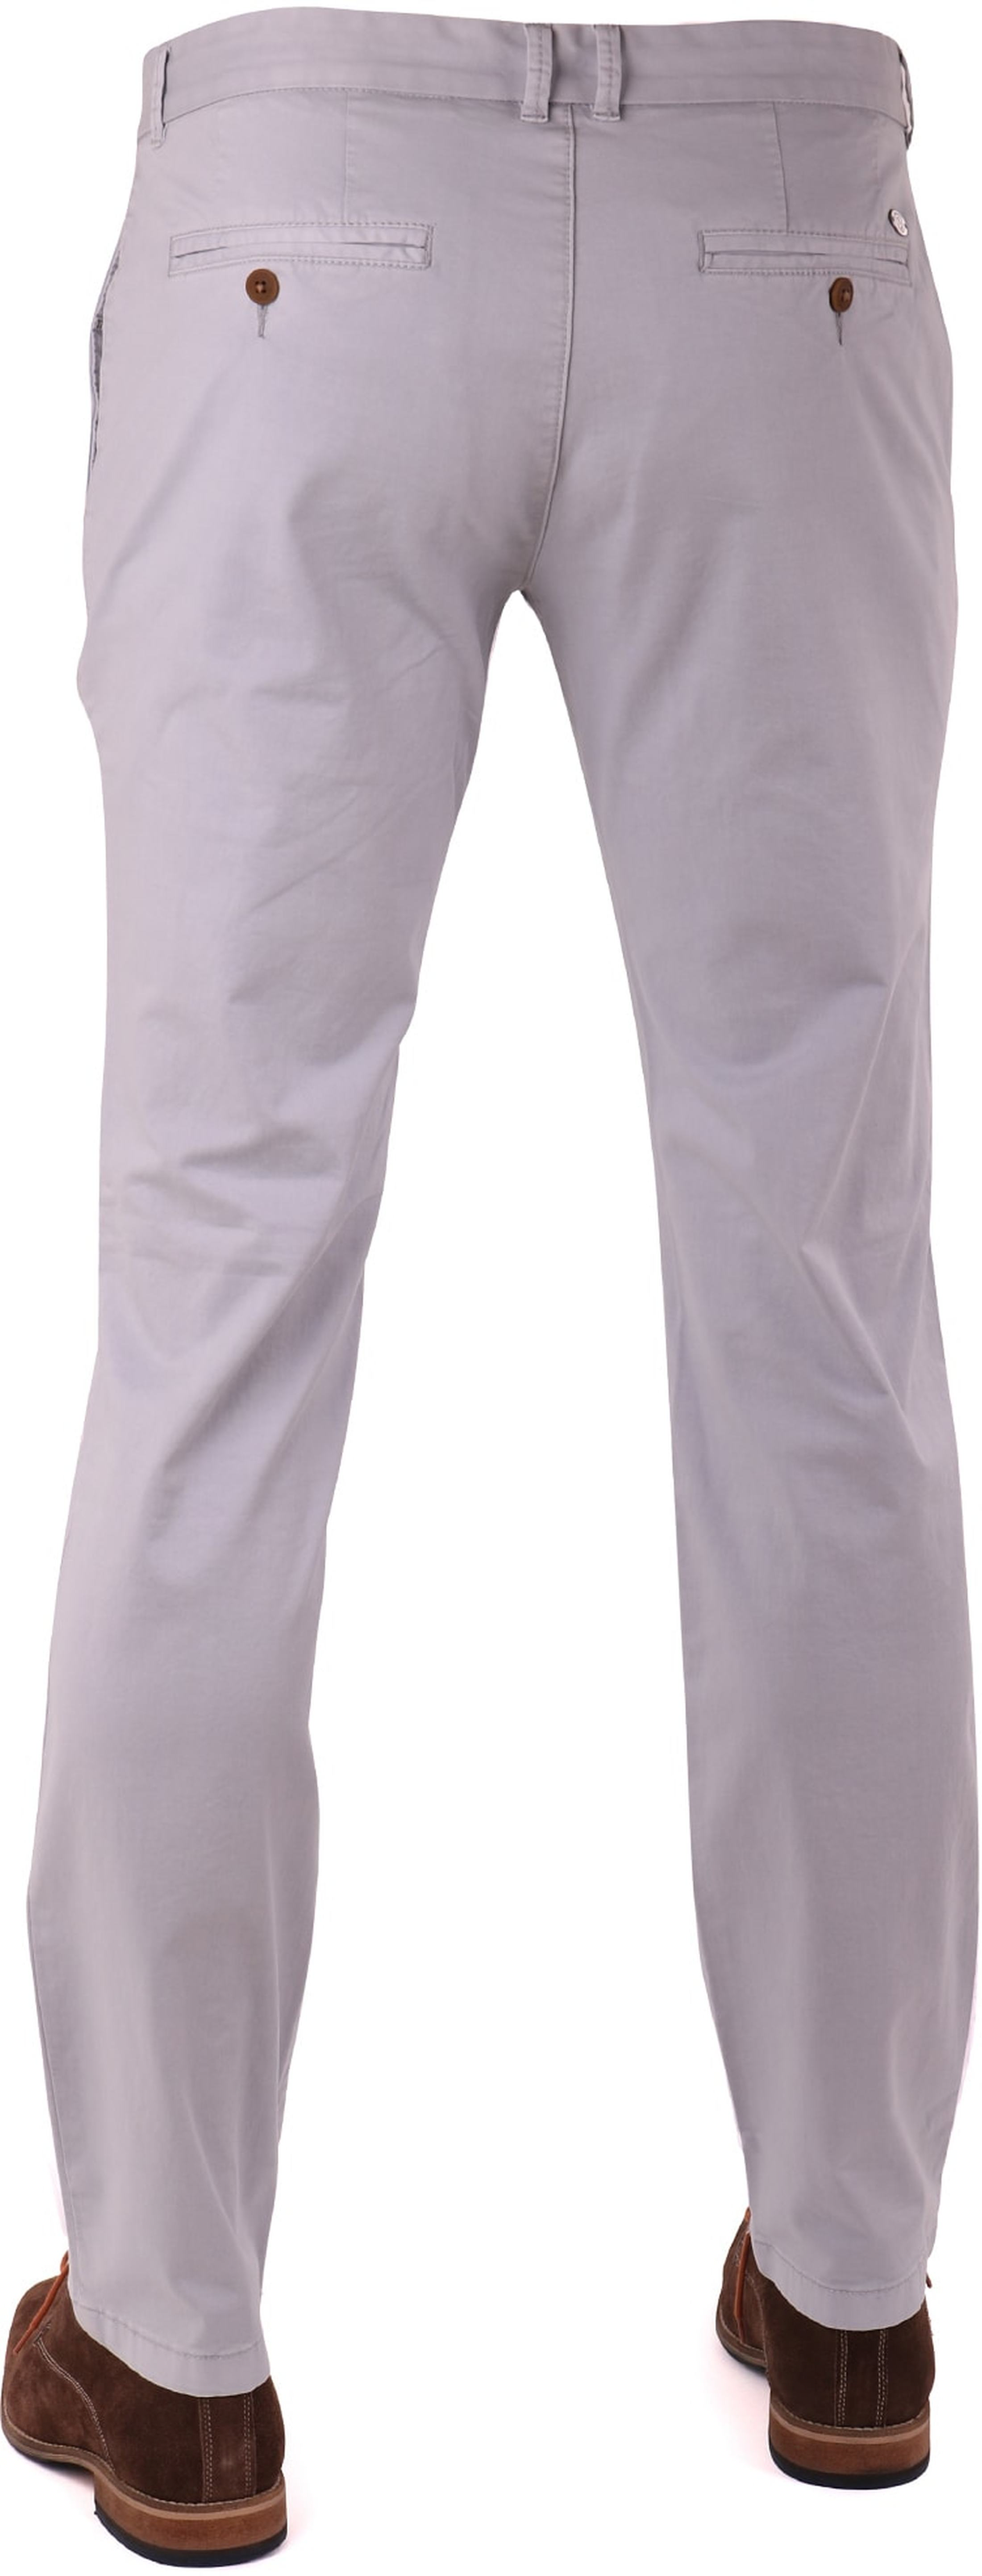 Suitable Chino Jeans Light Grey foto 1